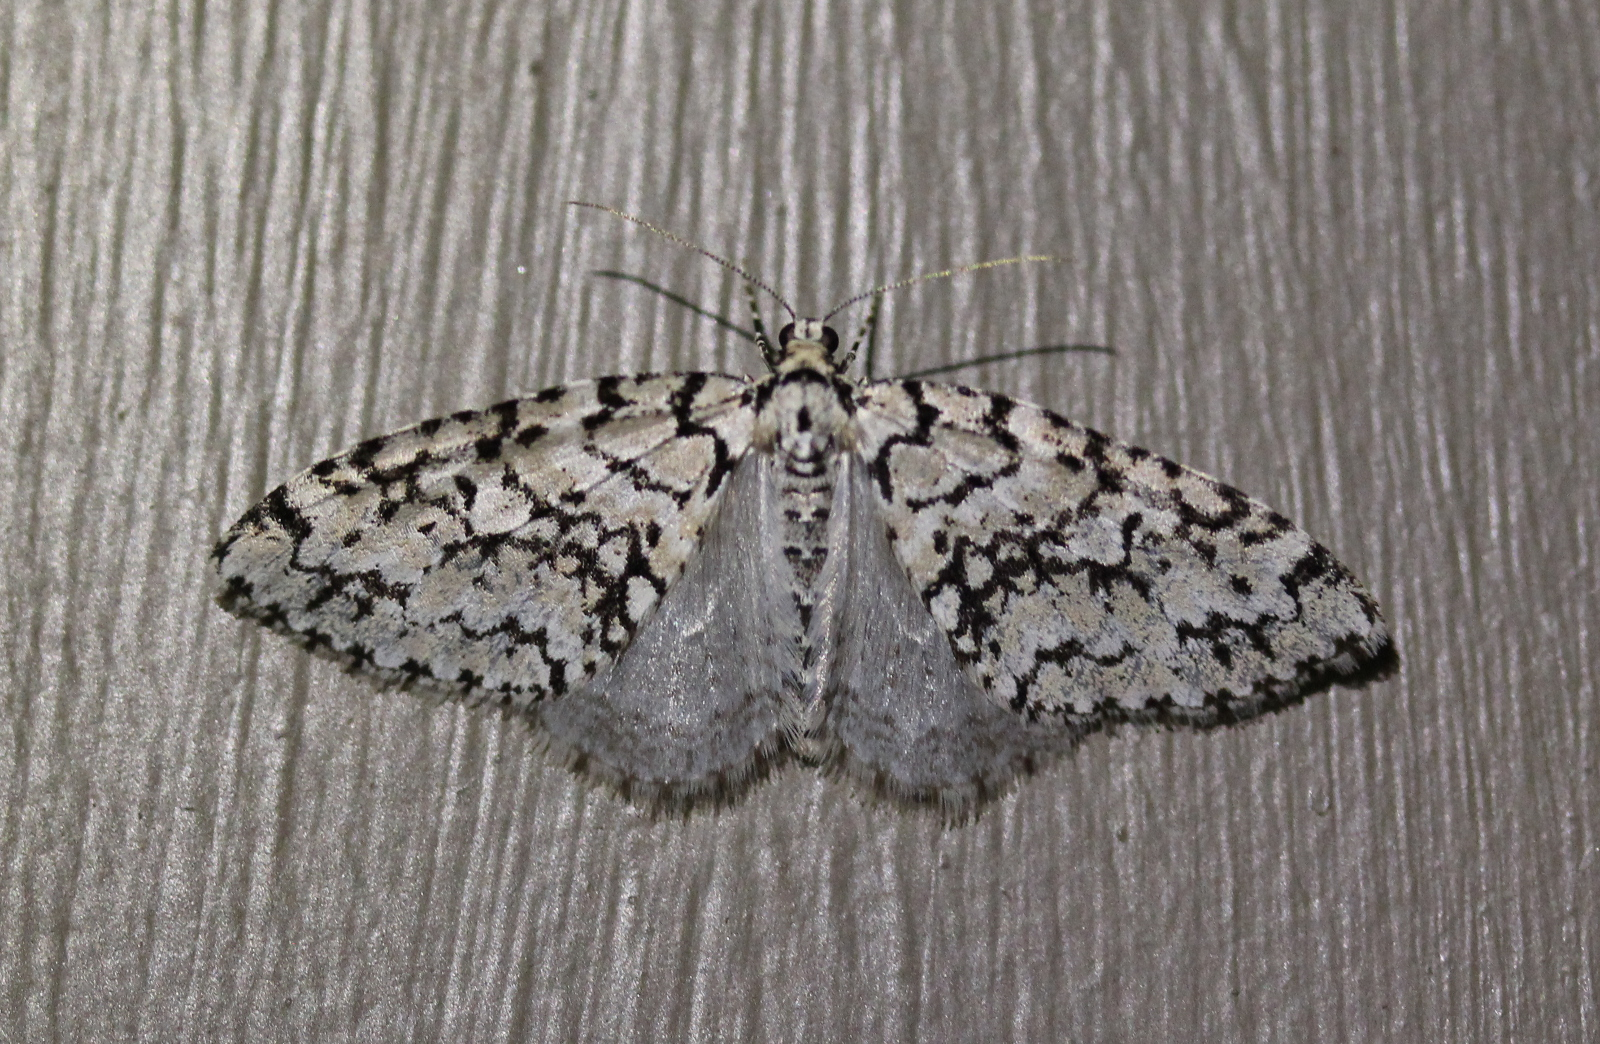 mottled black/white moth on painted door